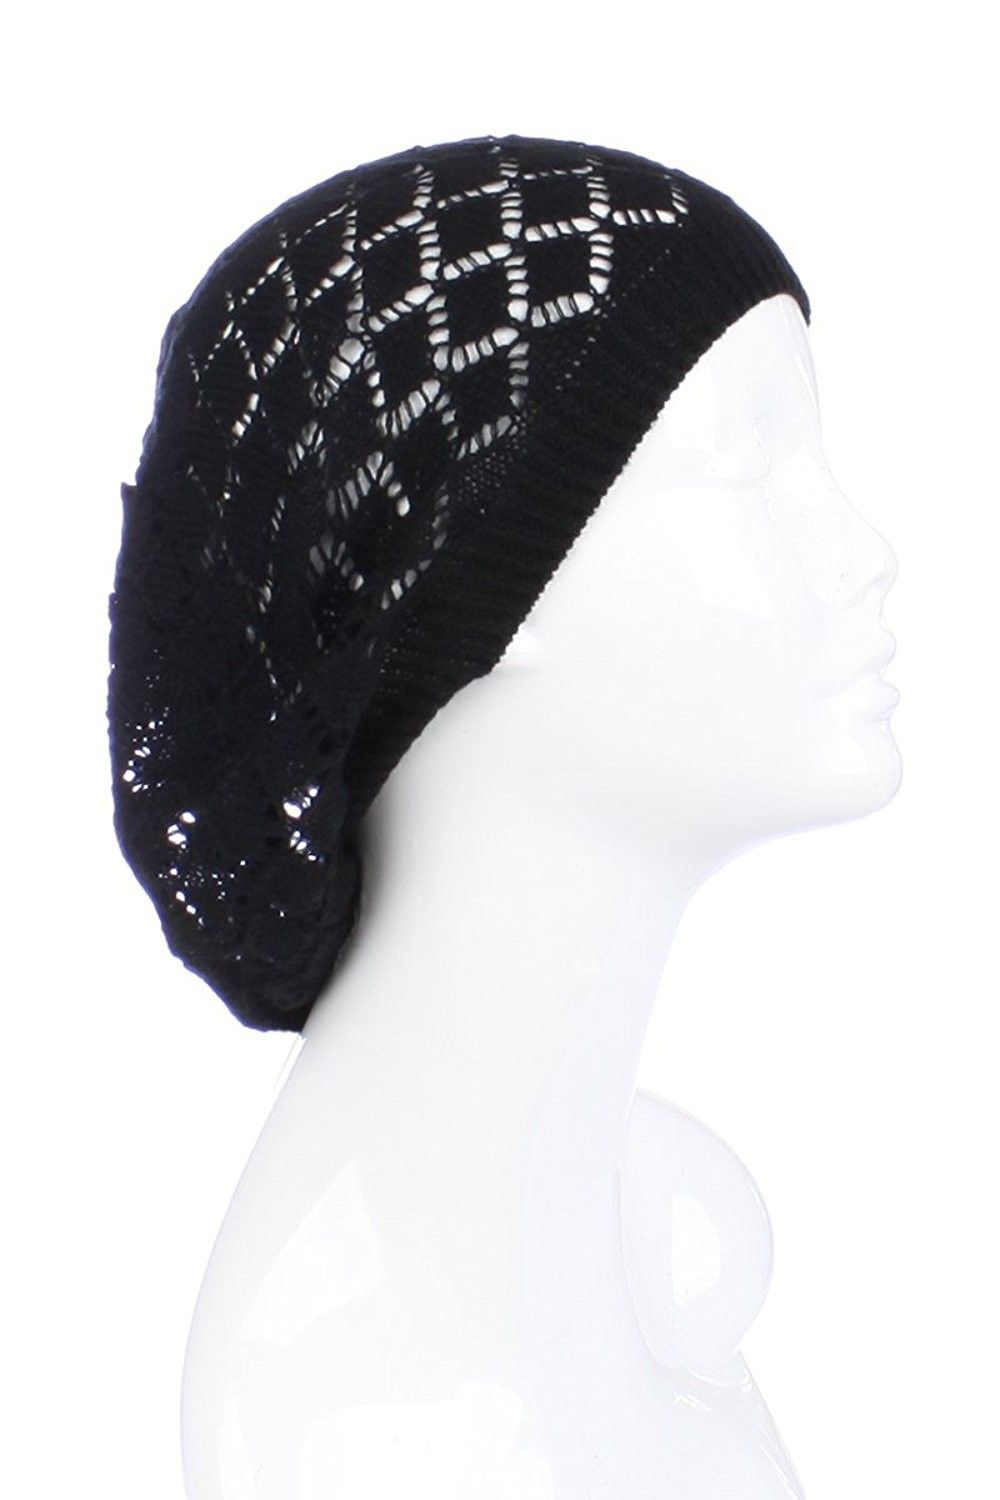 d2745bf5 Hats & Caps, Women's Hats & Caps, Berets, Womens Lightweight Cut Out Knit  Beanie Beret Cap Crochet Hat - Many Styles - Black Diamond - CA12LCQ5R3R # hats ...